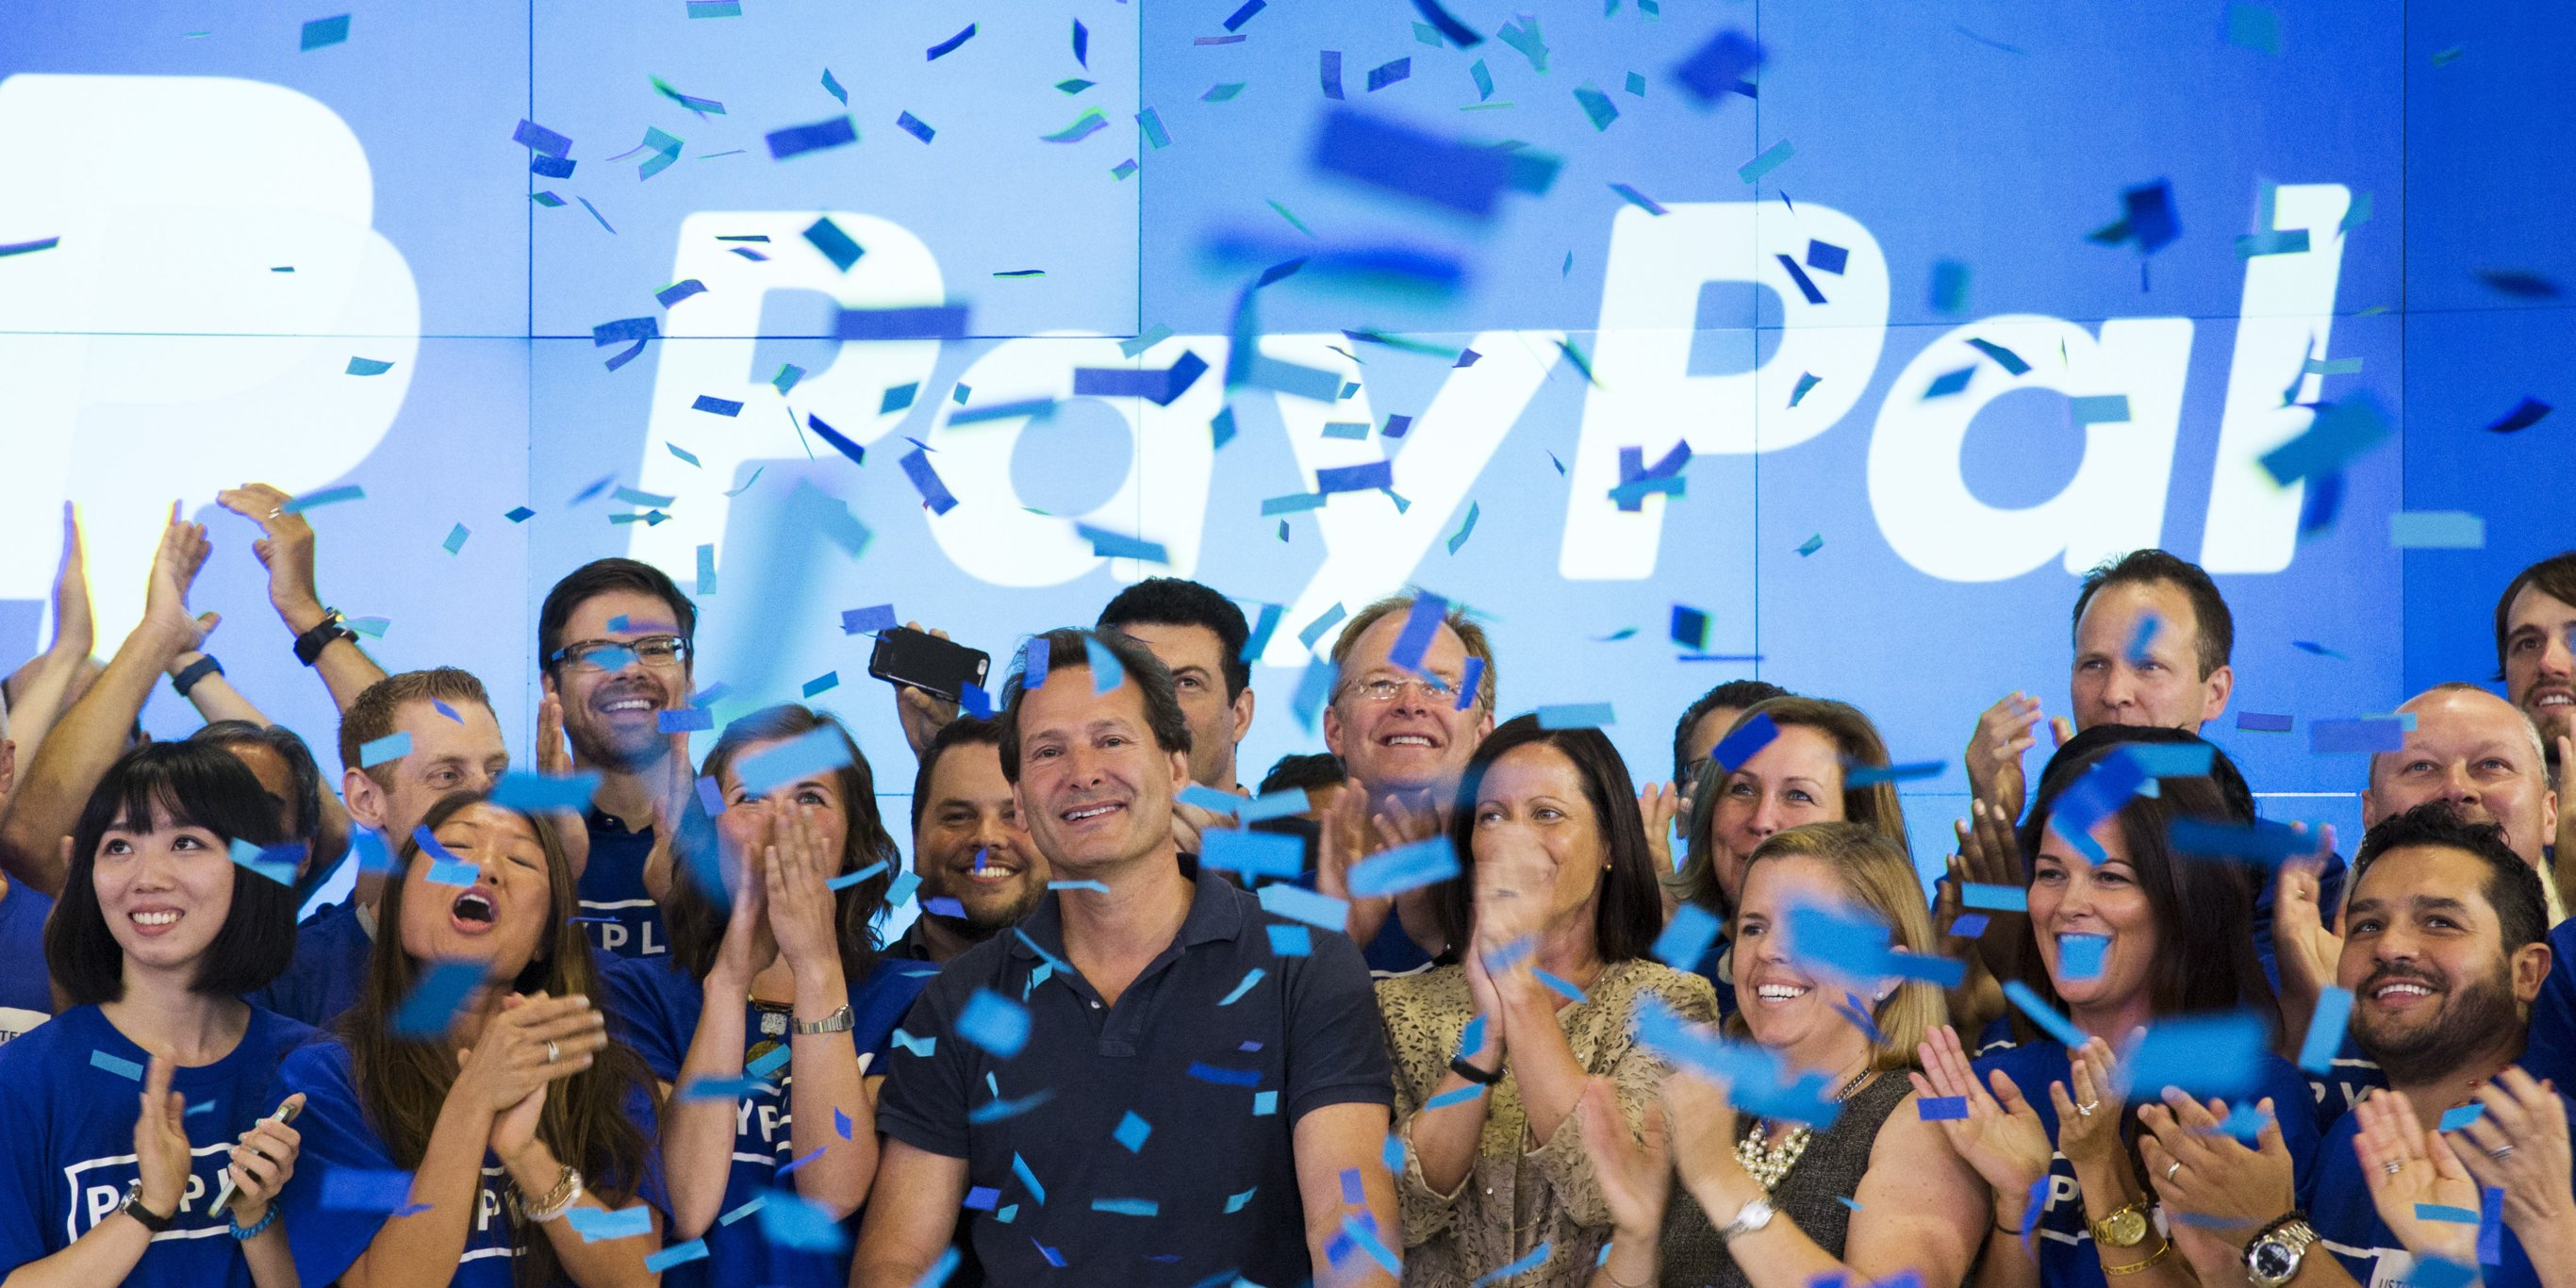 PayPal's CTO says data is the secret sauce to help it tailor payments for customers and beat out competitors like Stripe and Square